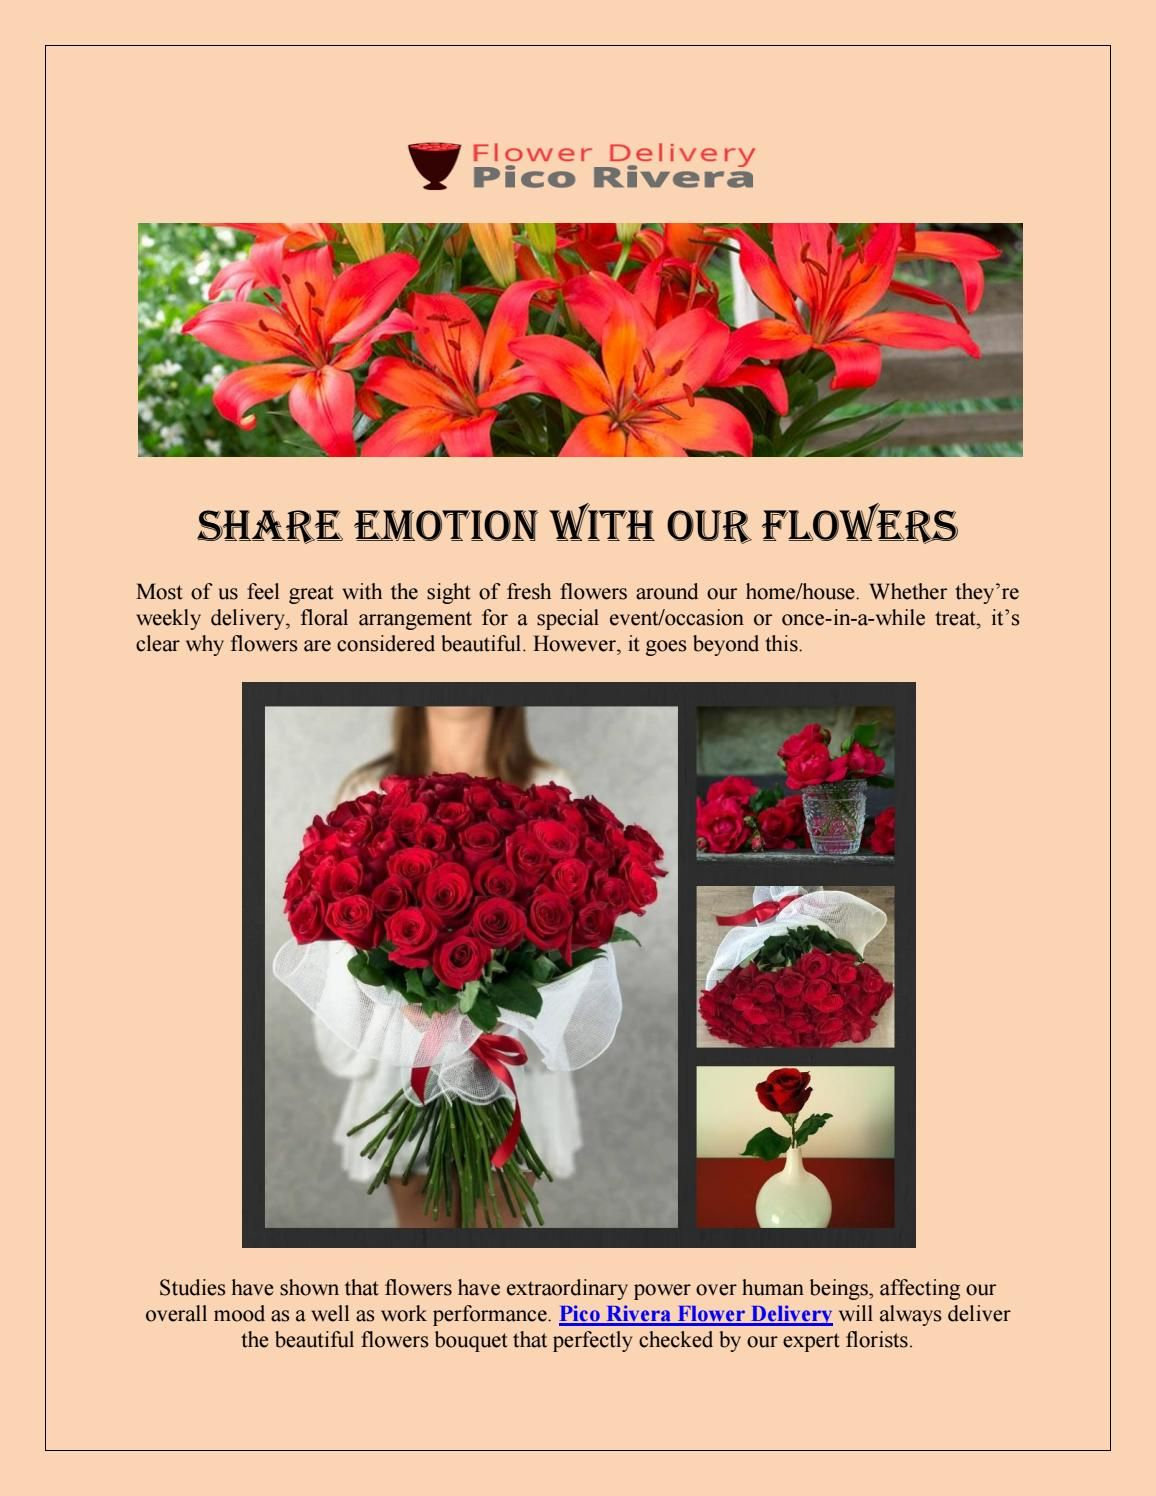 Share emotion with our flowers luxury flower for birthday pinterest izmirmasajfo